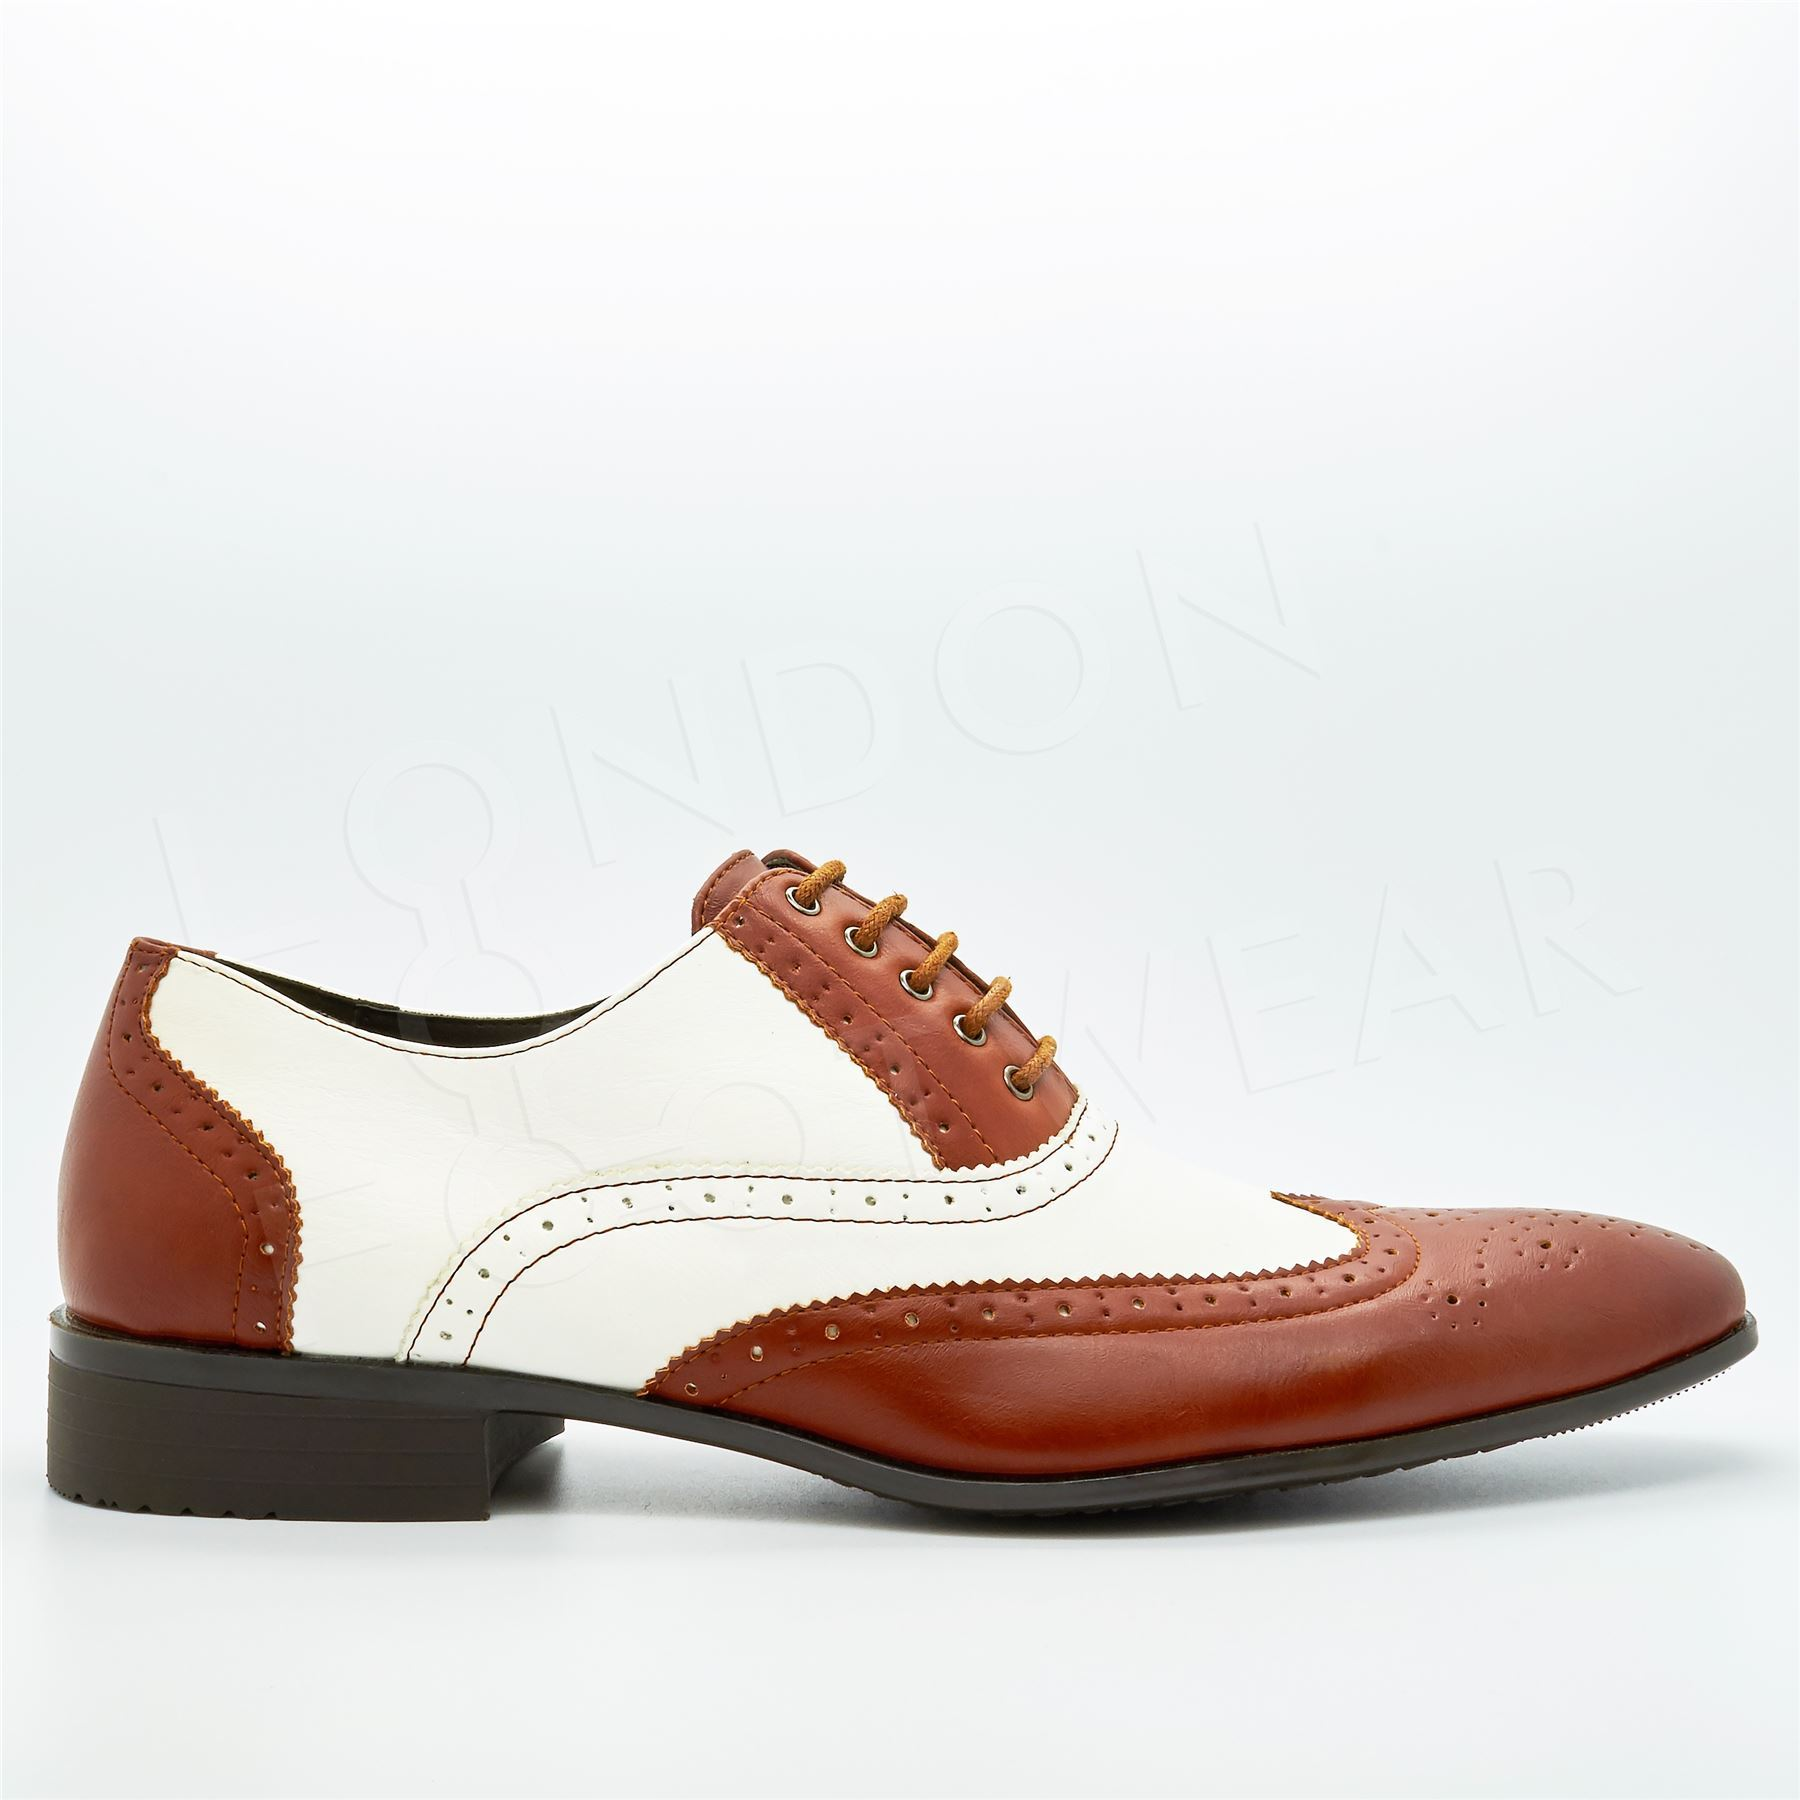 Two Tone Wingtip Shoes Uk